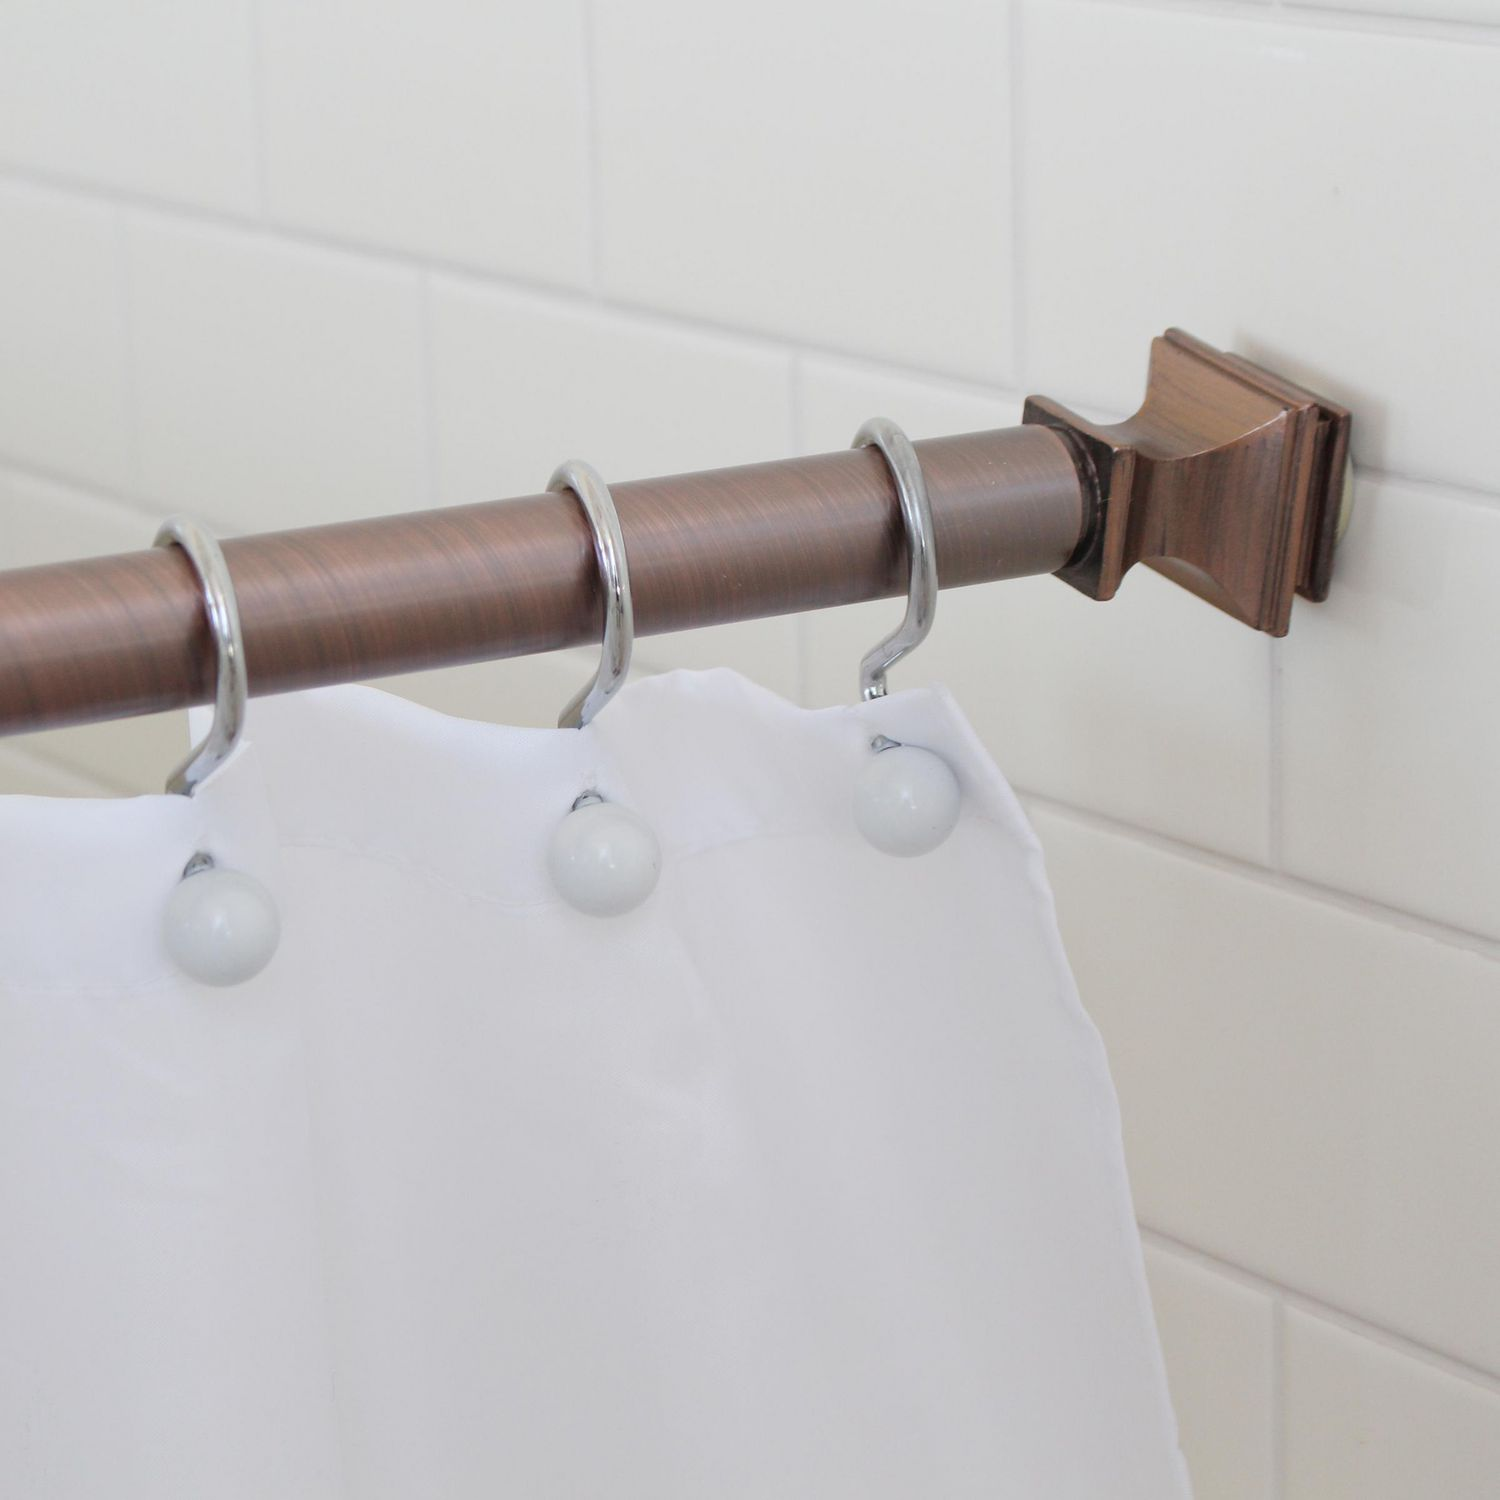 tringle a rideau de douche decorative pour salle de bain a tenue constante et a tension constante resistant a la rouille splash home kare extensible